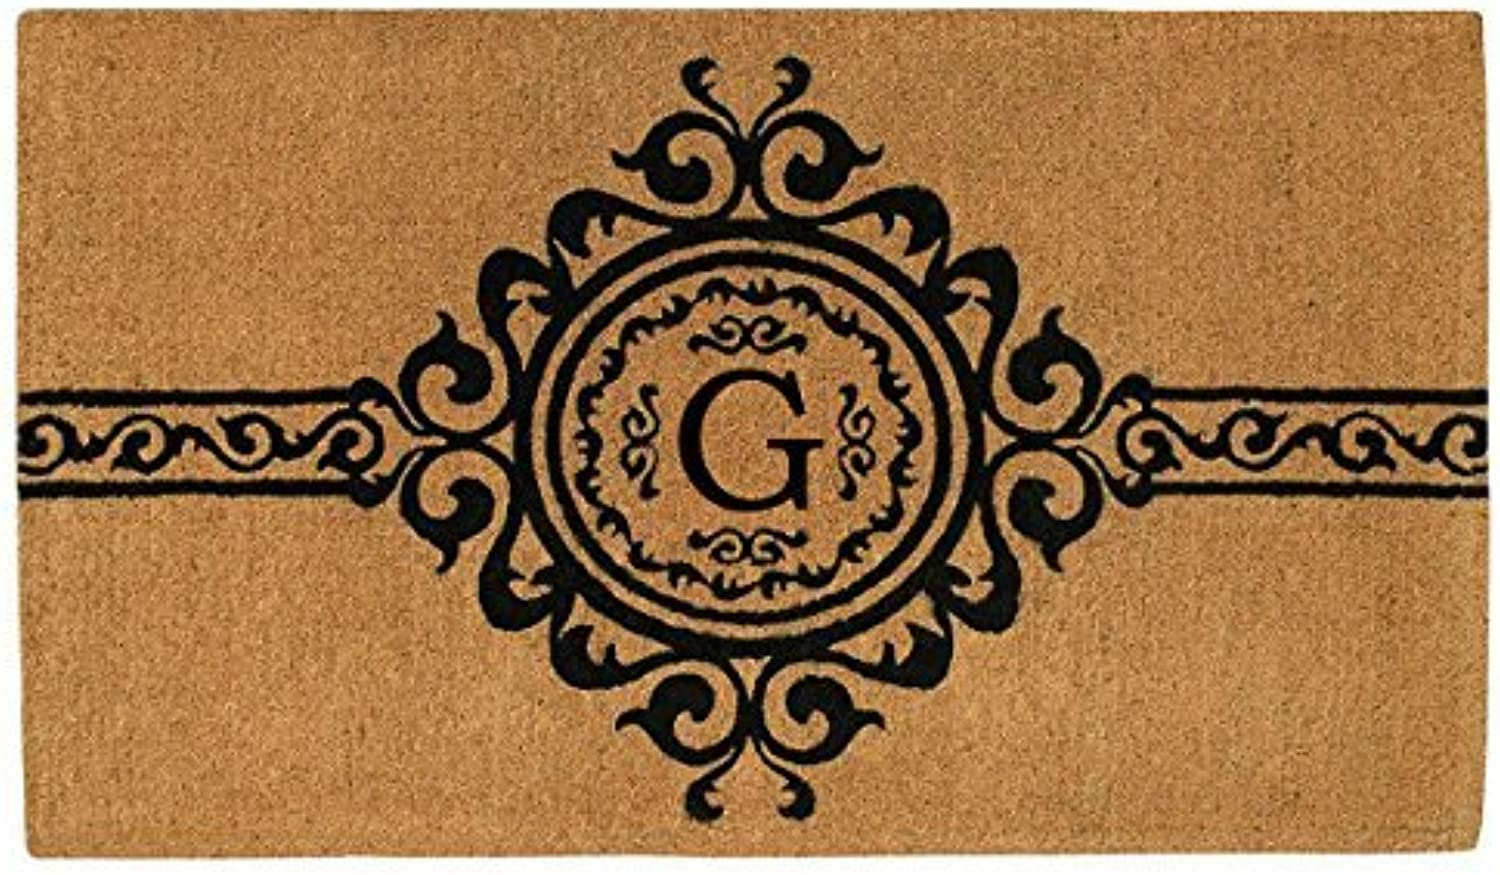 Home & More 180072436G Garbo 2' X 3' Extra-thick Monogrammed Doormat (Letter G)